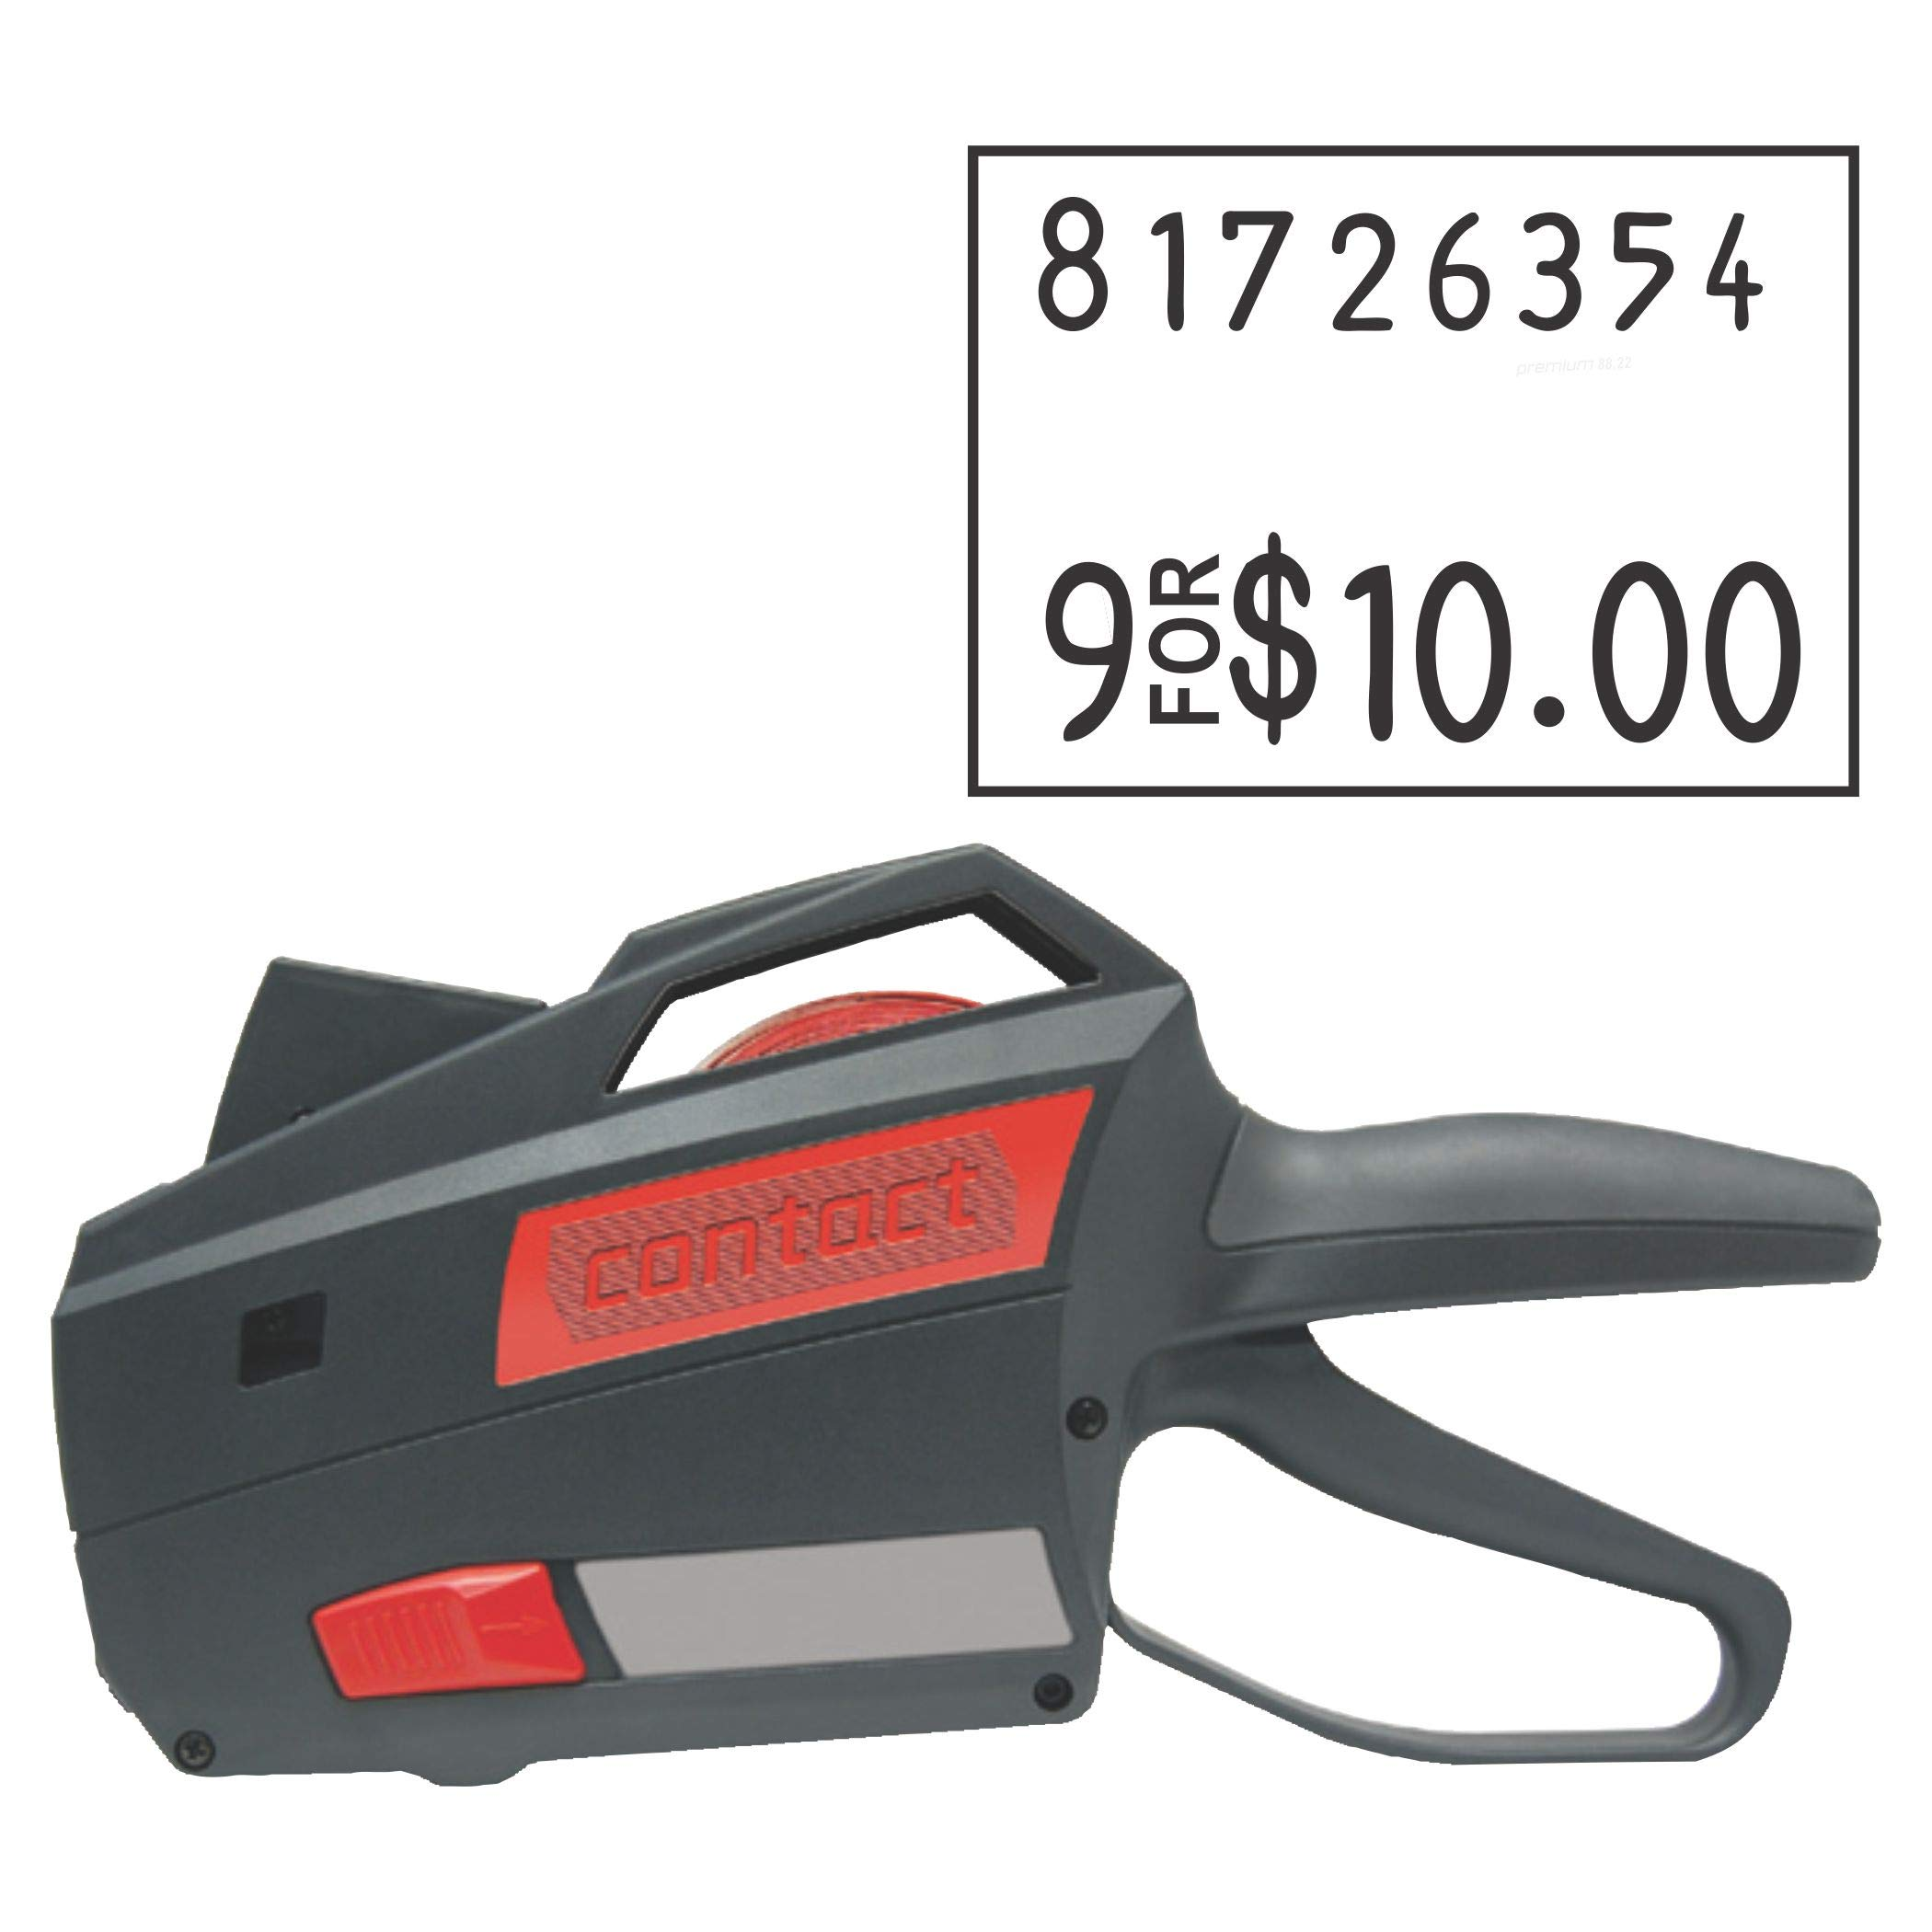 Contact Price Tagging Gun, Model 88.22, 2-Line, 8-Character Price Tag Gun, Includes 1 Pricing Gun and pre-Loaded with Over 1,100 Standard (White) Price Stickers. Label Size: (HxW) 16mm x 22mm